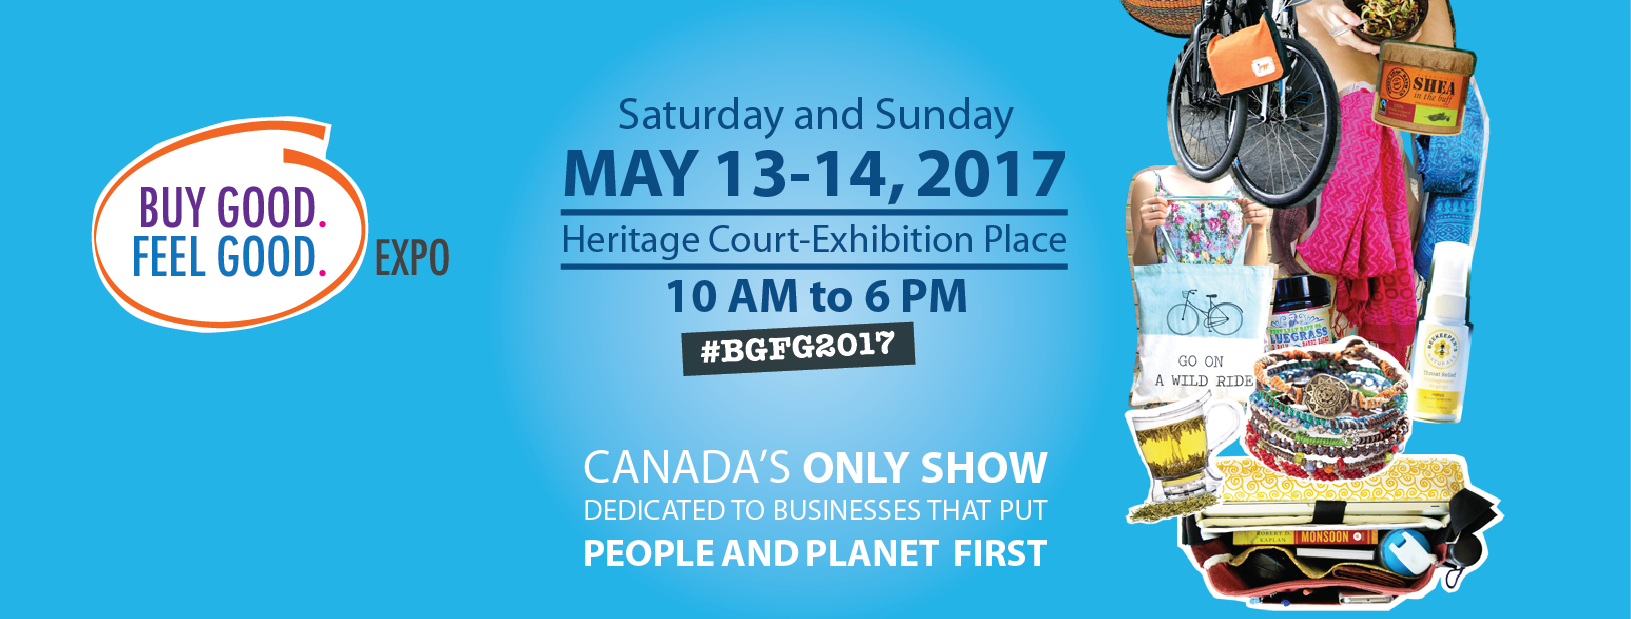 Hey #Toronto, see you at the Buy Good. Feel Good. Expo May 13-14! https://t.co/zTuhOut5JI @TFTS2014 https://t.co/PcnuwBMIAP